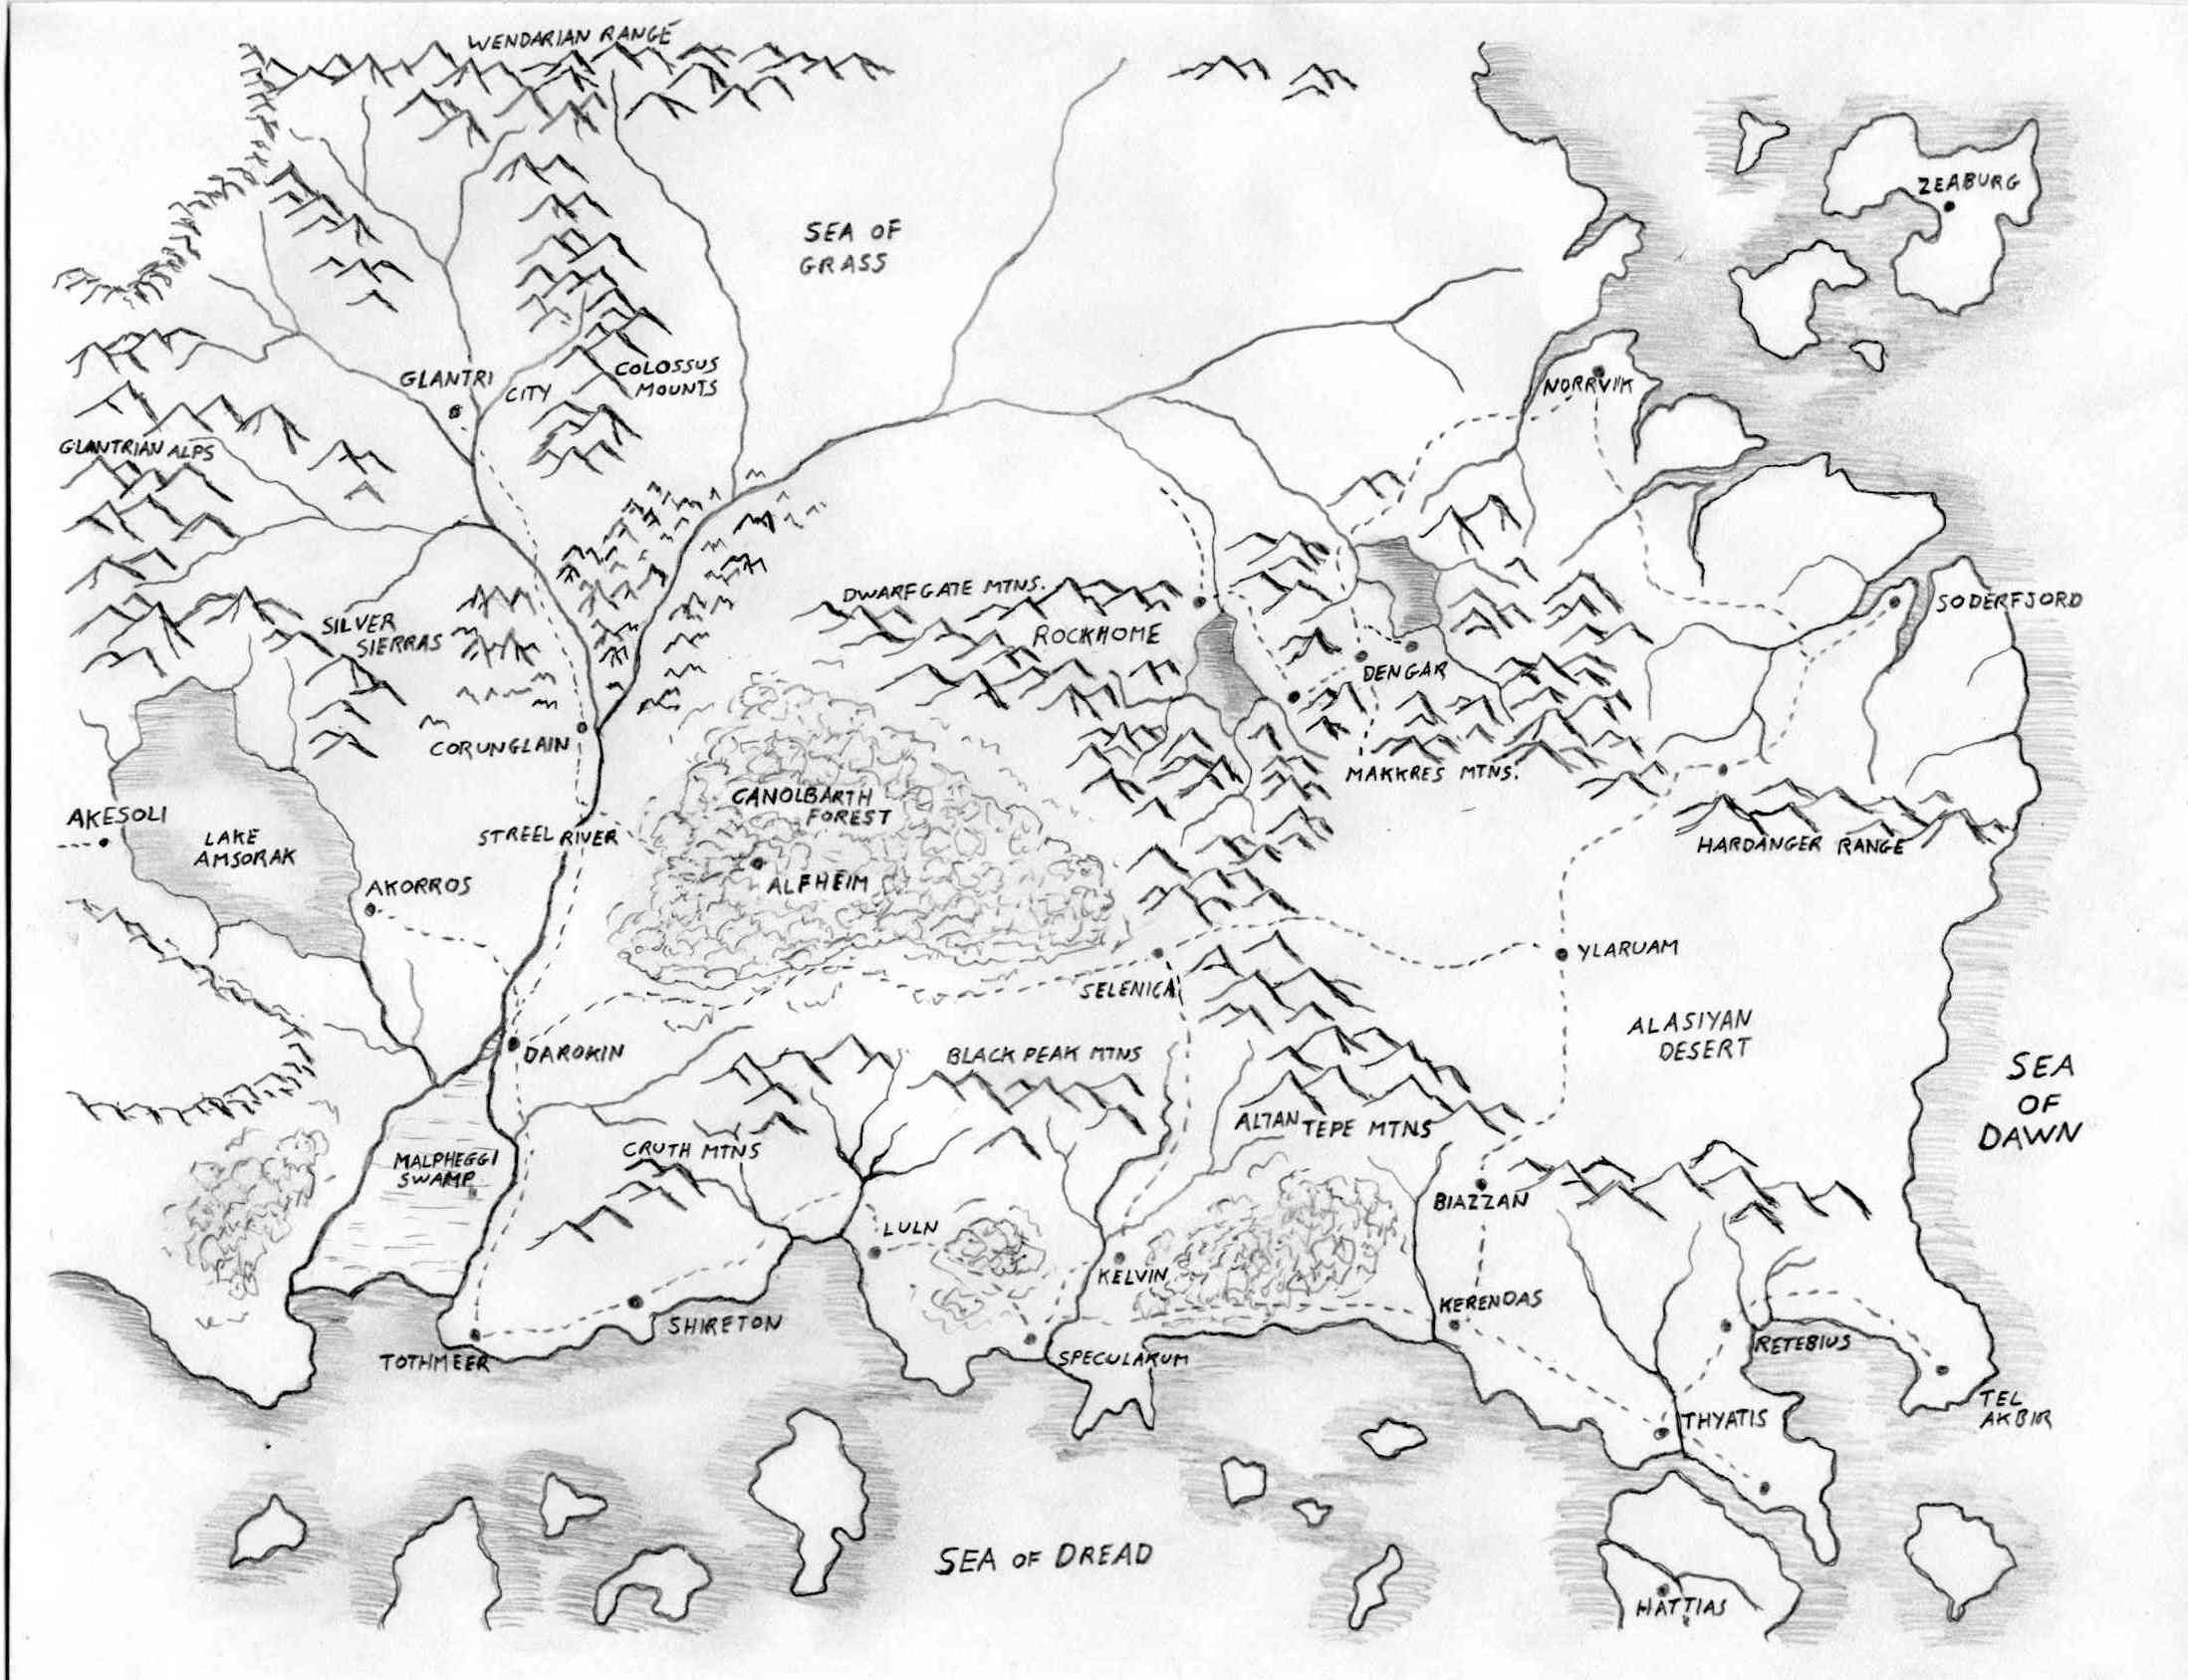 Fantasy world drawing at getdrawings free for personal use 2197x1687 fantasy world generator random map cartography maps gumiabroncs Image collections